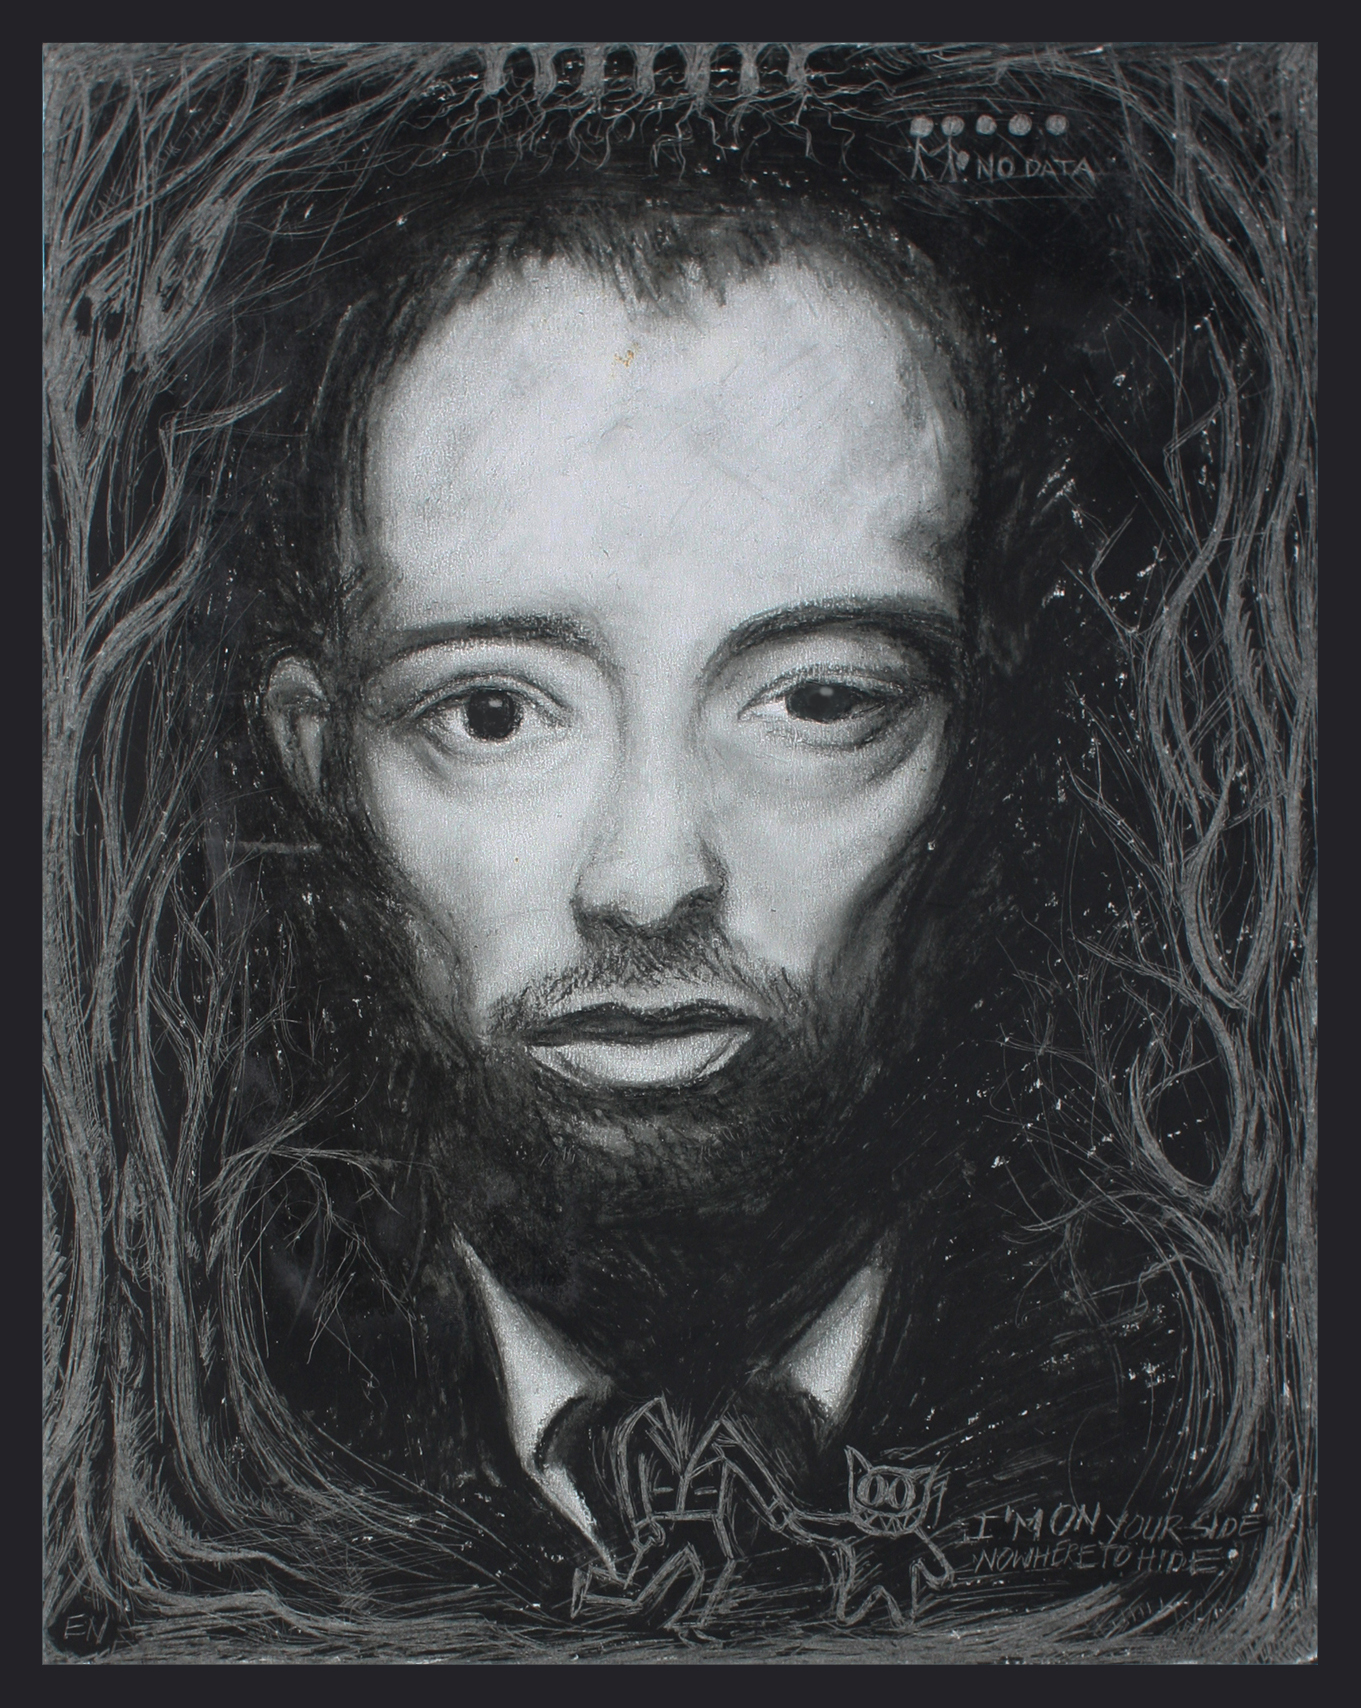 A Portrait of Thom Yorke